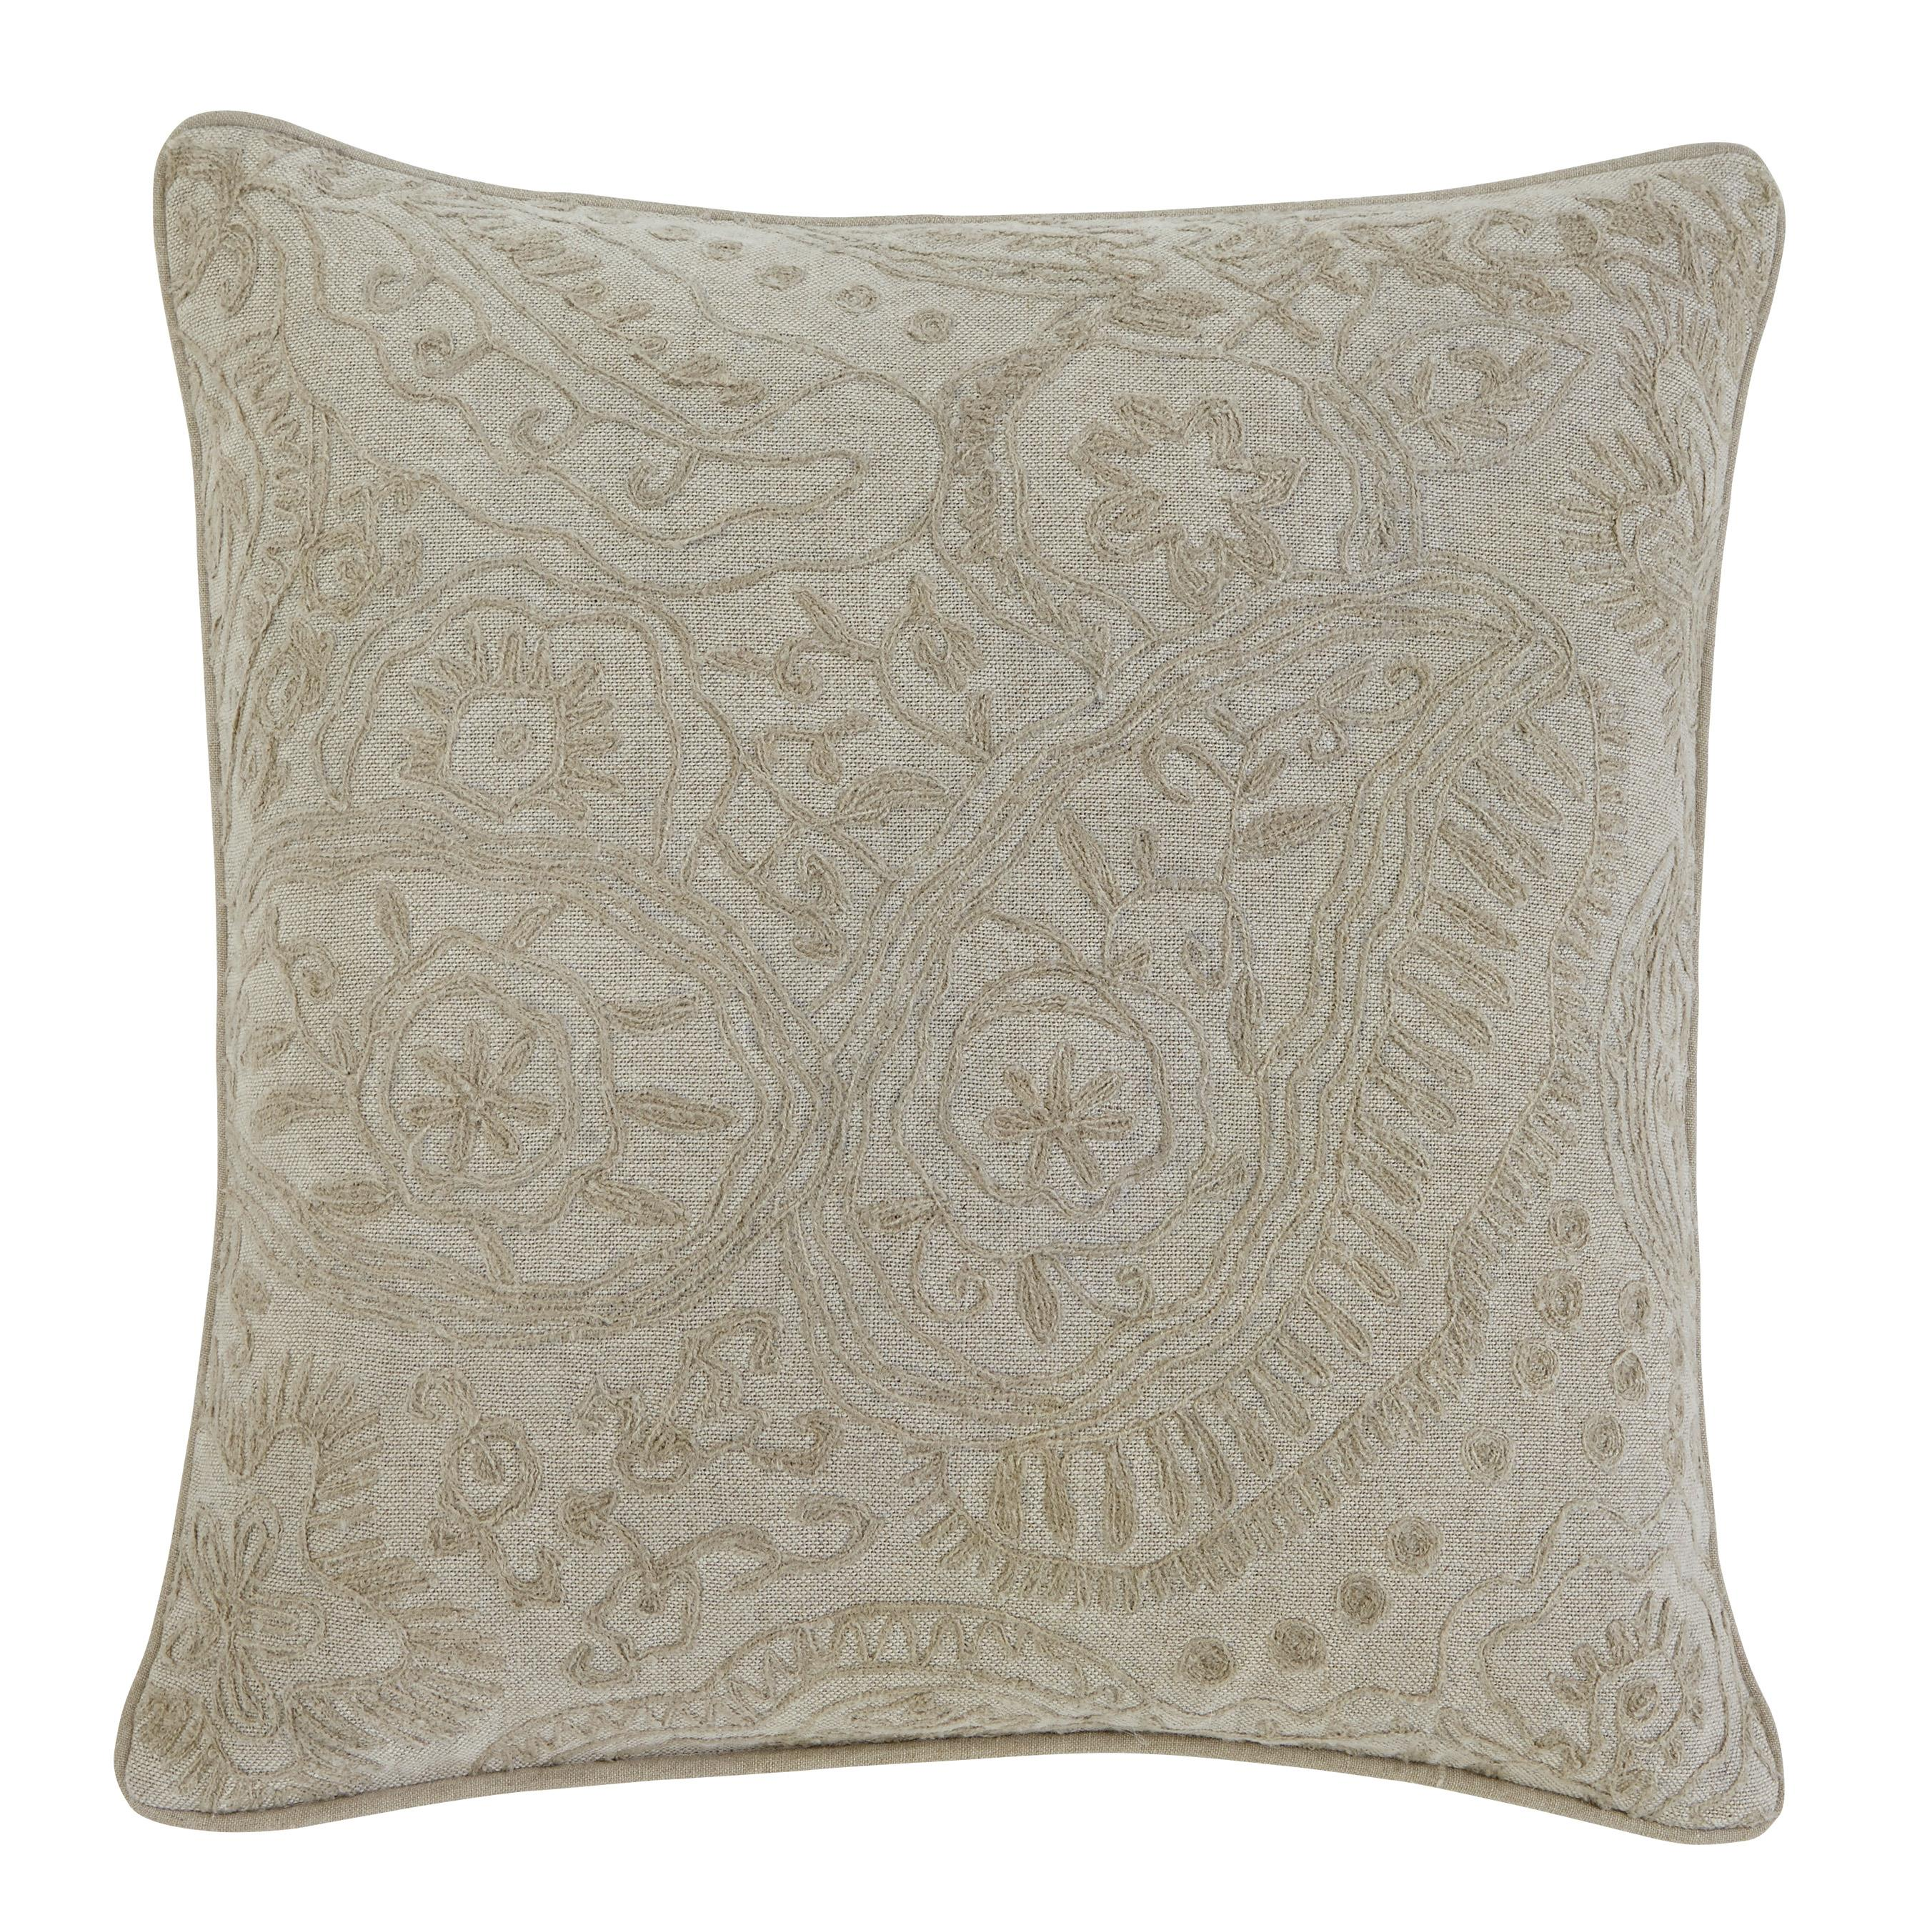 Signature Design by Ashley Pillows Stitched - Natural Pillow Cover - Item Number: A1000302P